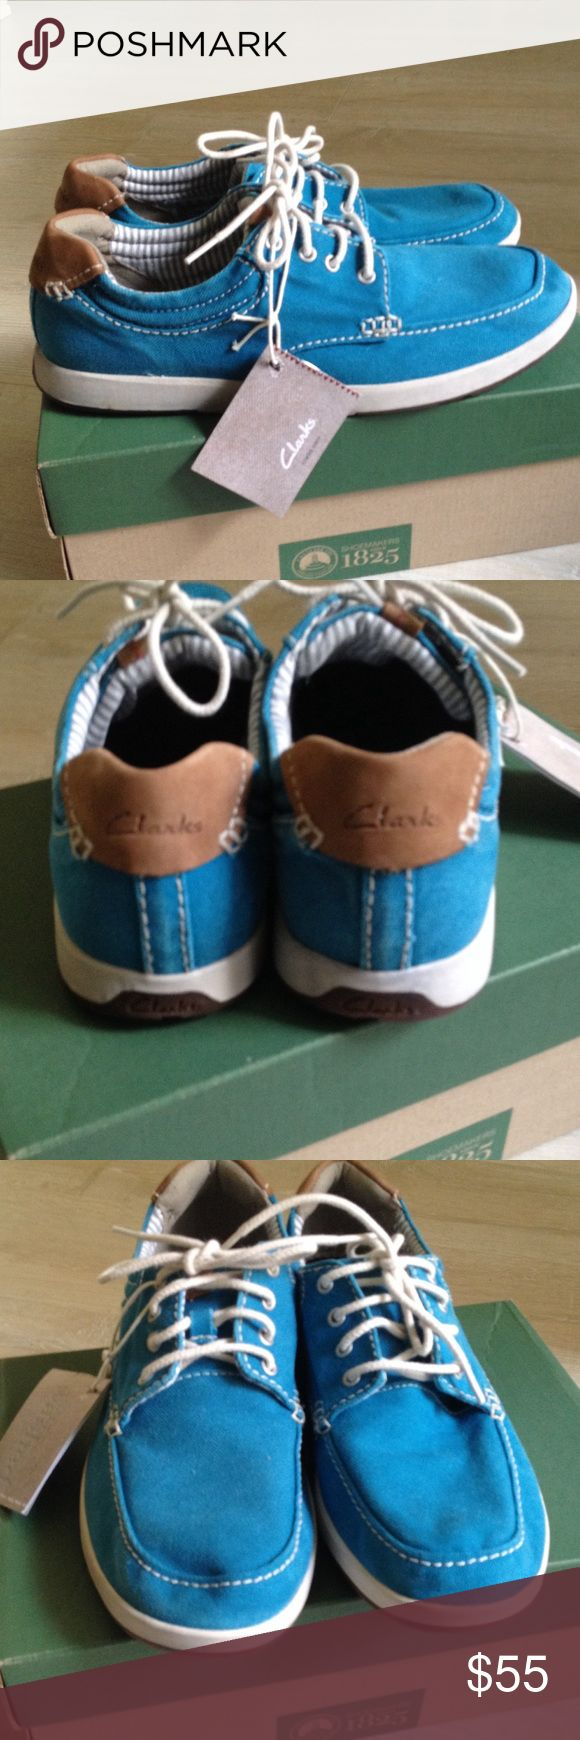 Men's Clarks teal canvas shoes size 9 M Brand new never worn men's Clarks shoes. Teal canvas with some leather detailing. Size 9 M. Clarks Shoes Sneakers